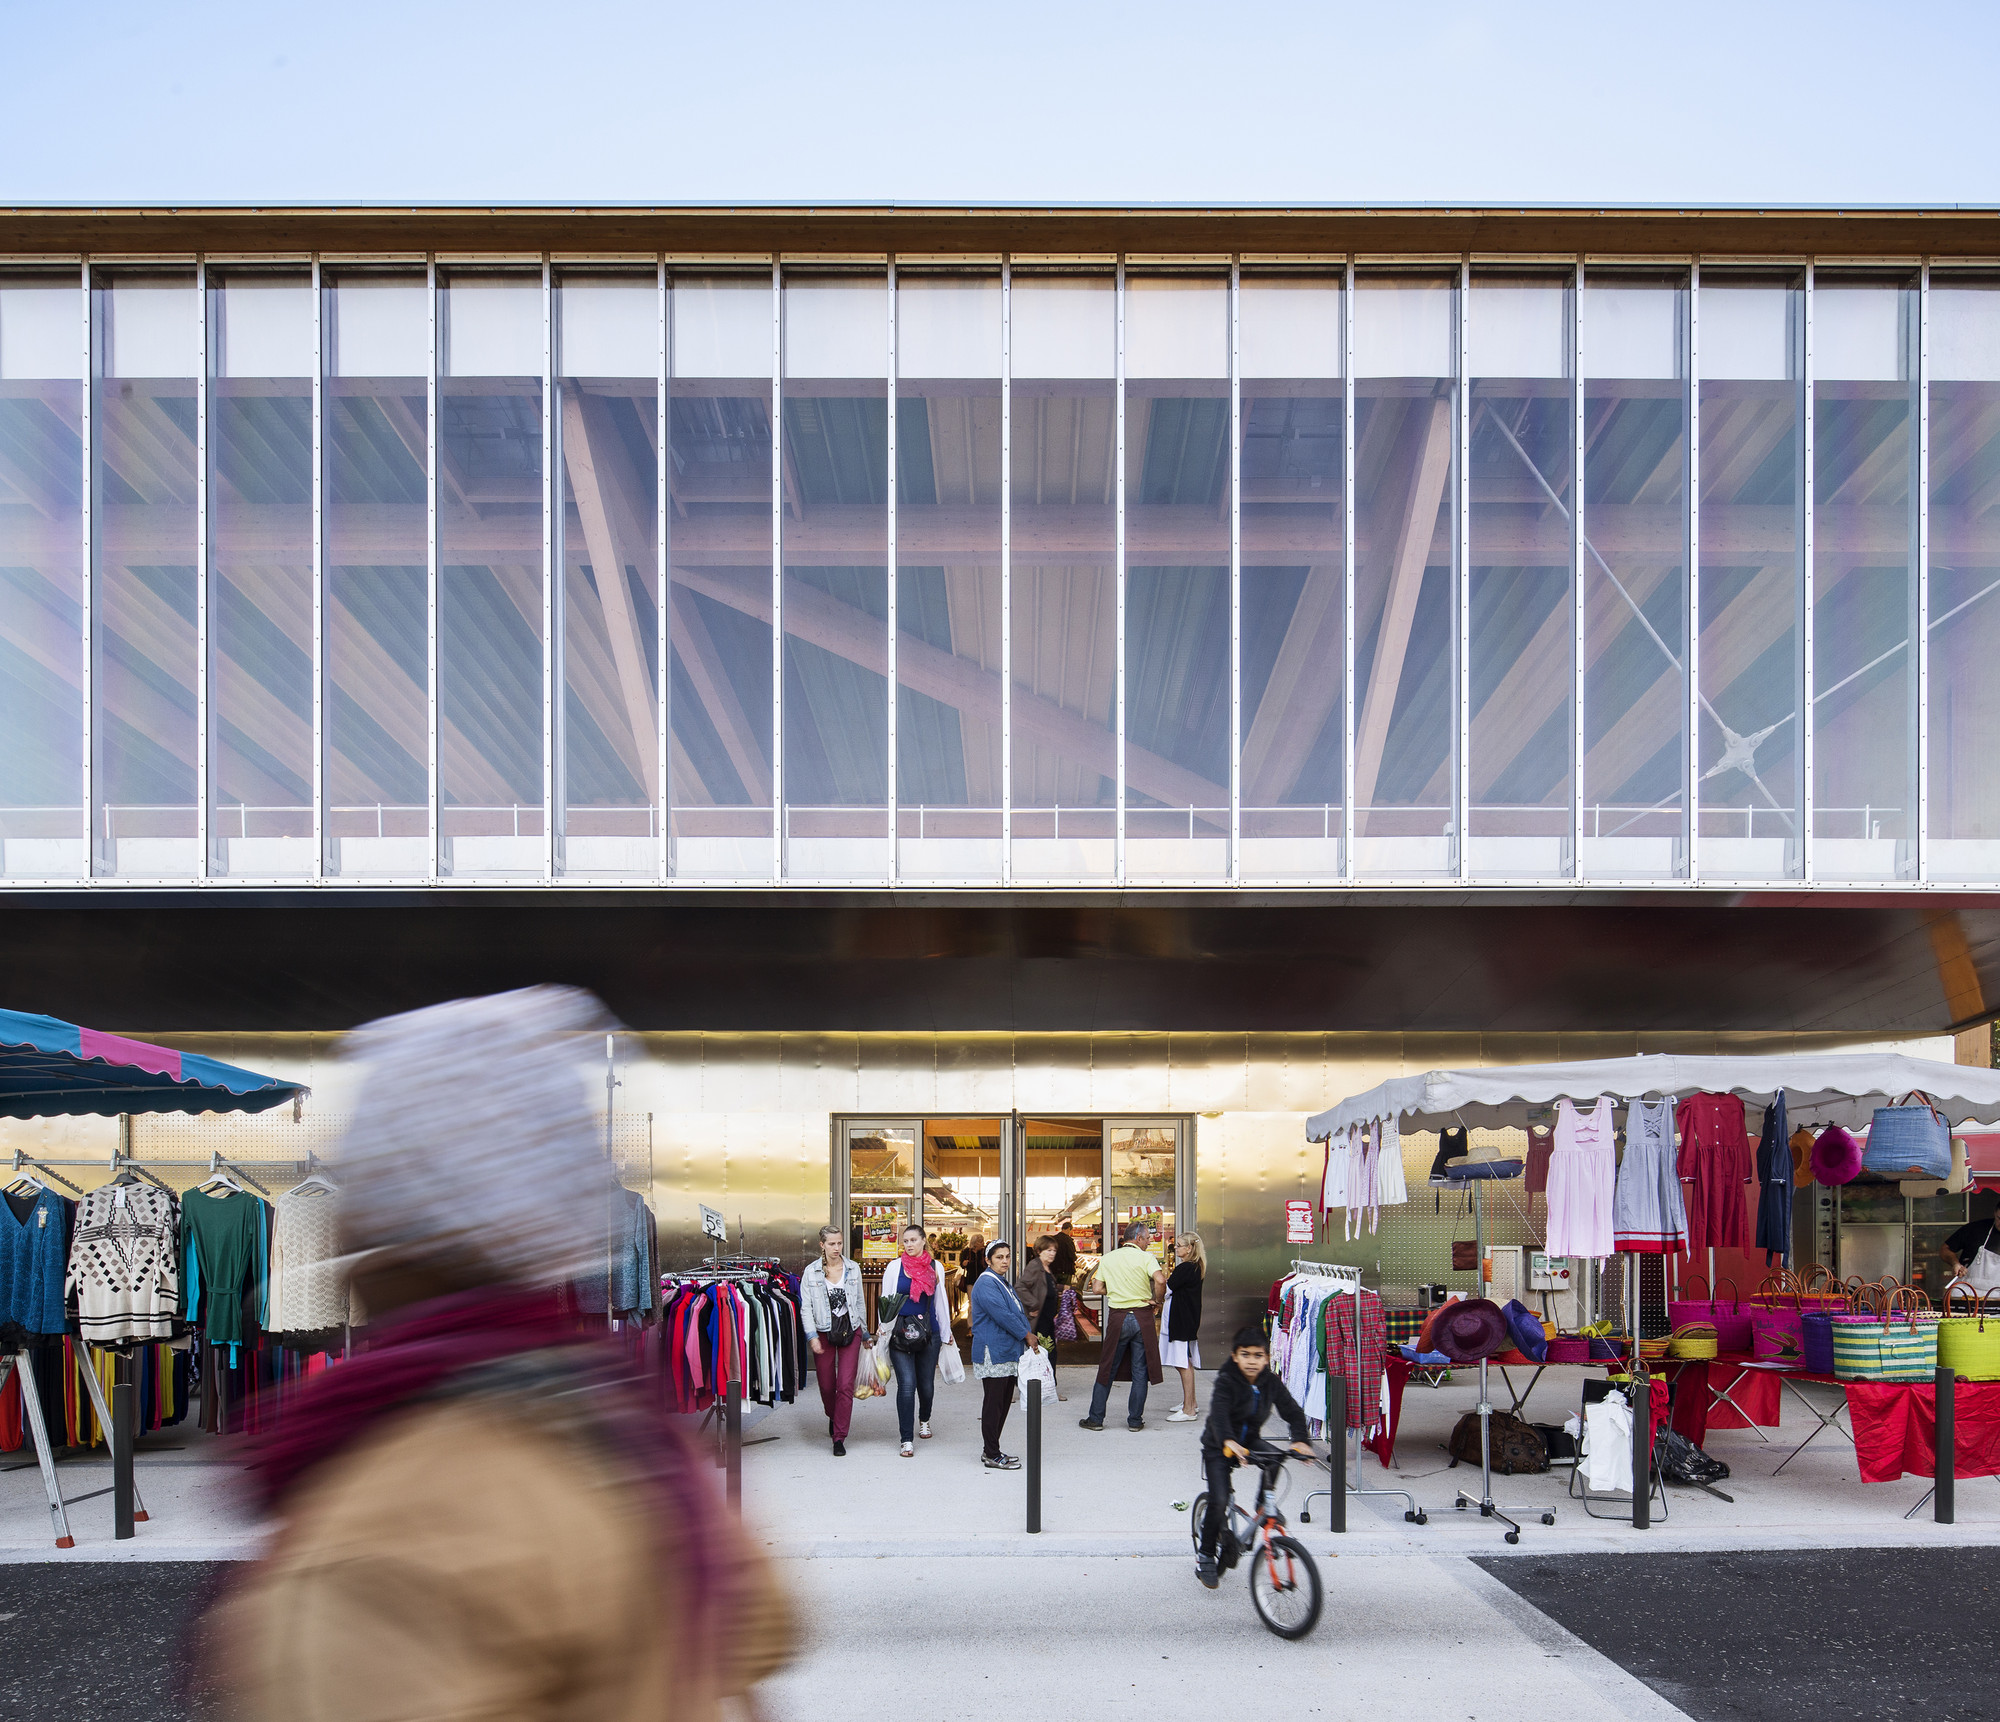 Cachan Covered Market / Croixmariebourdon Architectures, © Luc Boegly